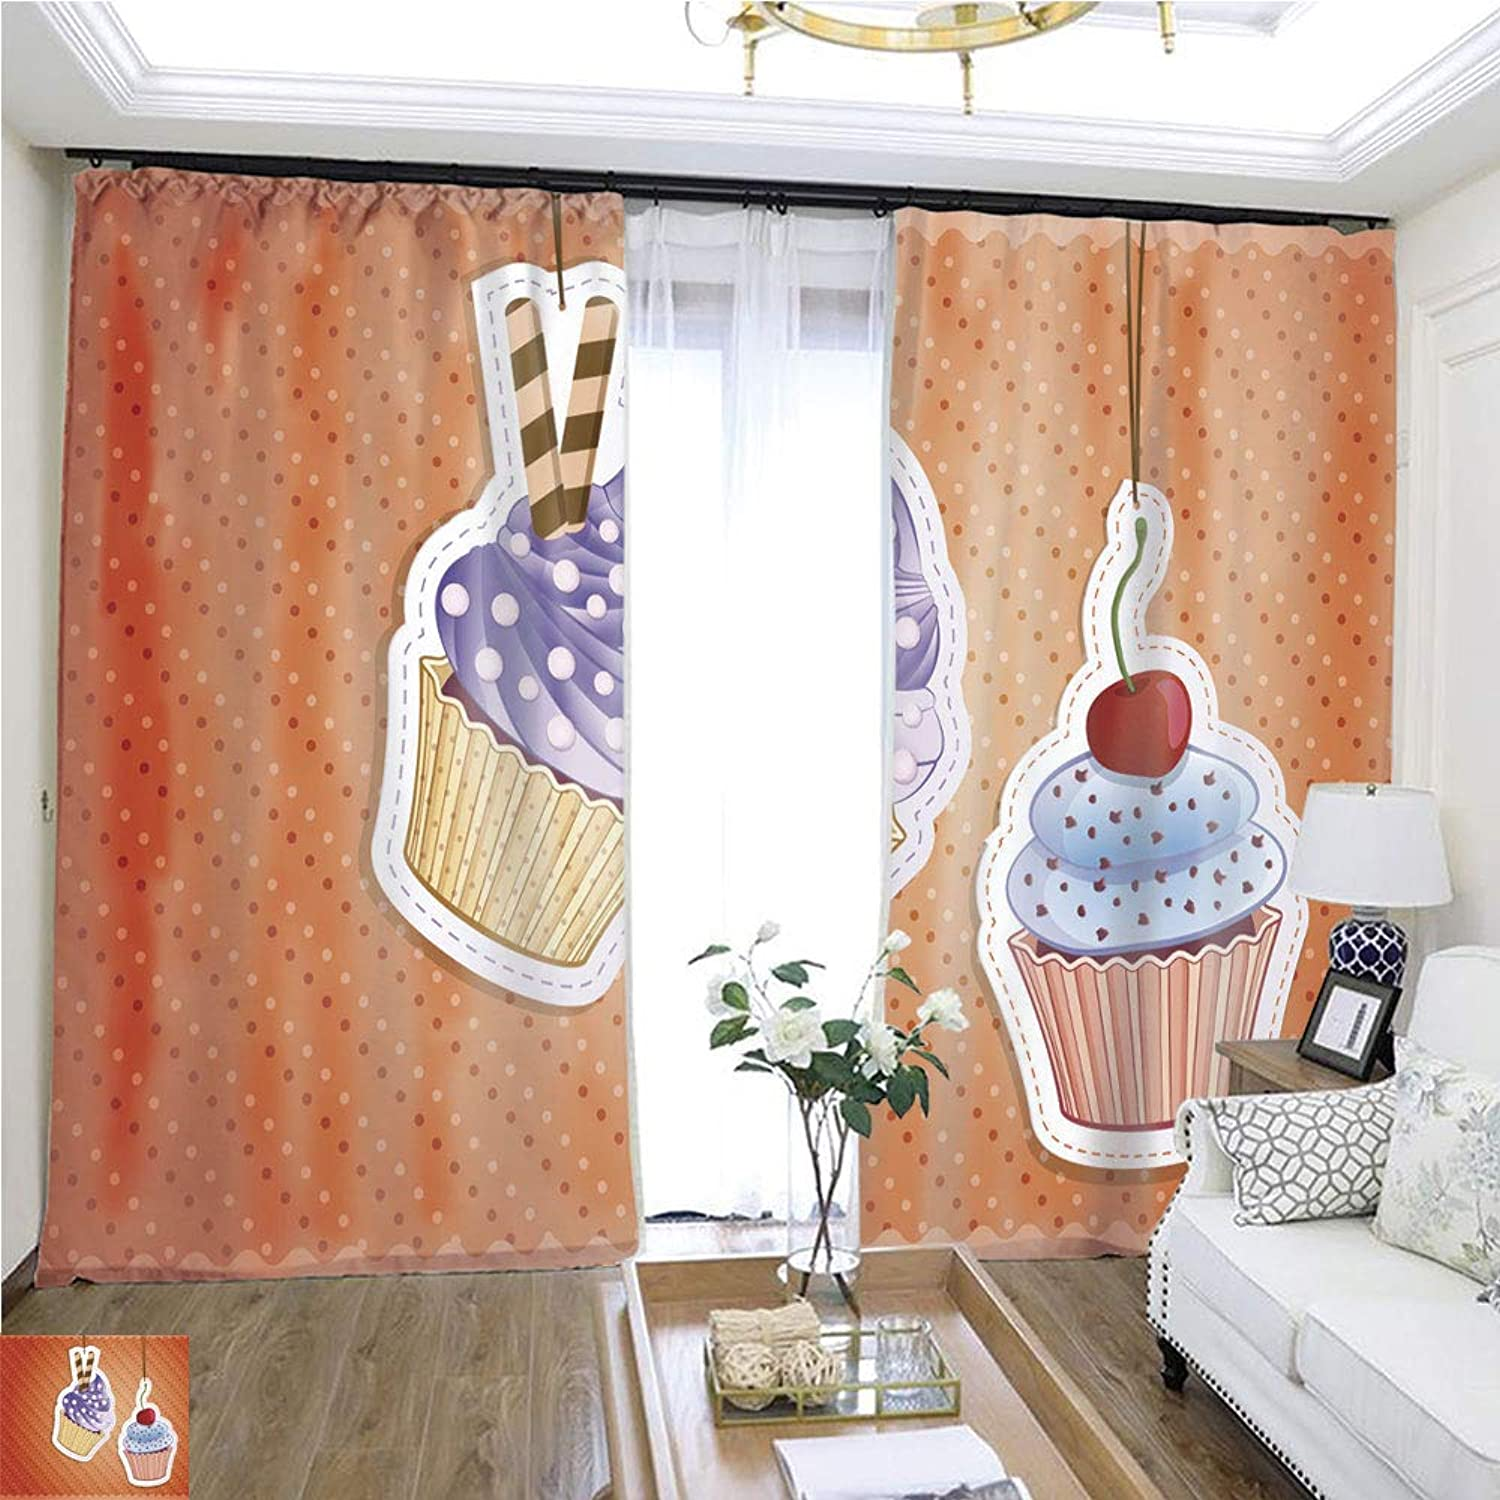 Air Port Screen Cupcake Stickers W96 x L216 Block The Sun Highprecision Curtains for bedrooms Living Rooms Kitchens etc.